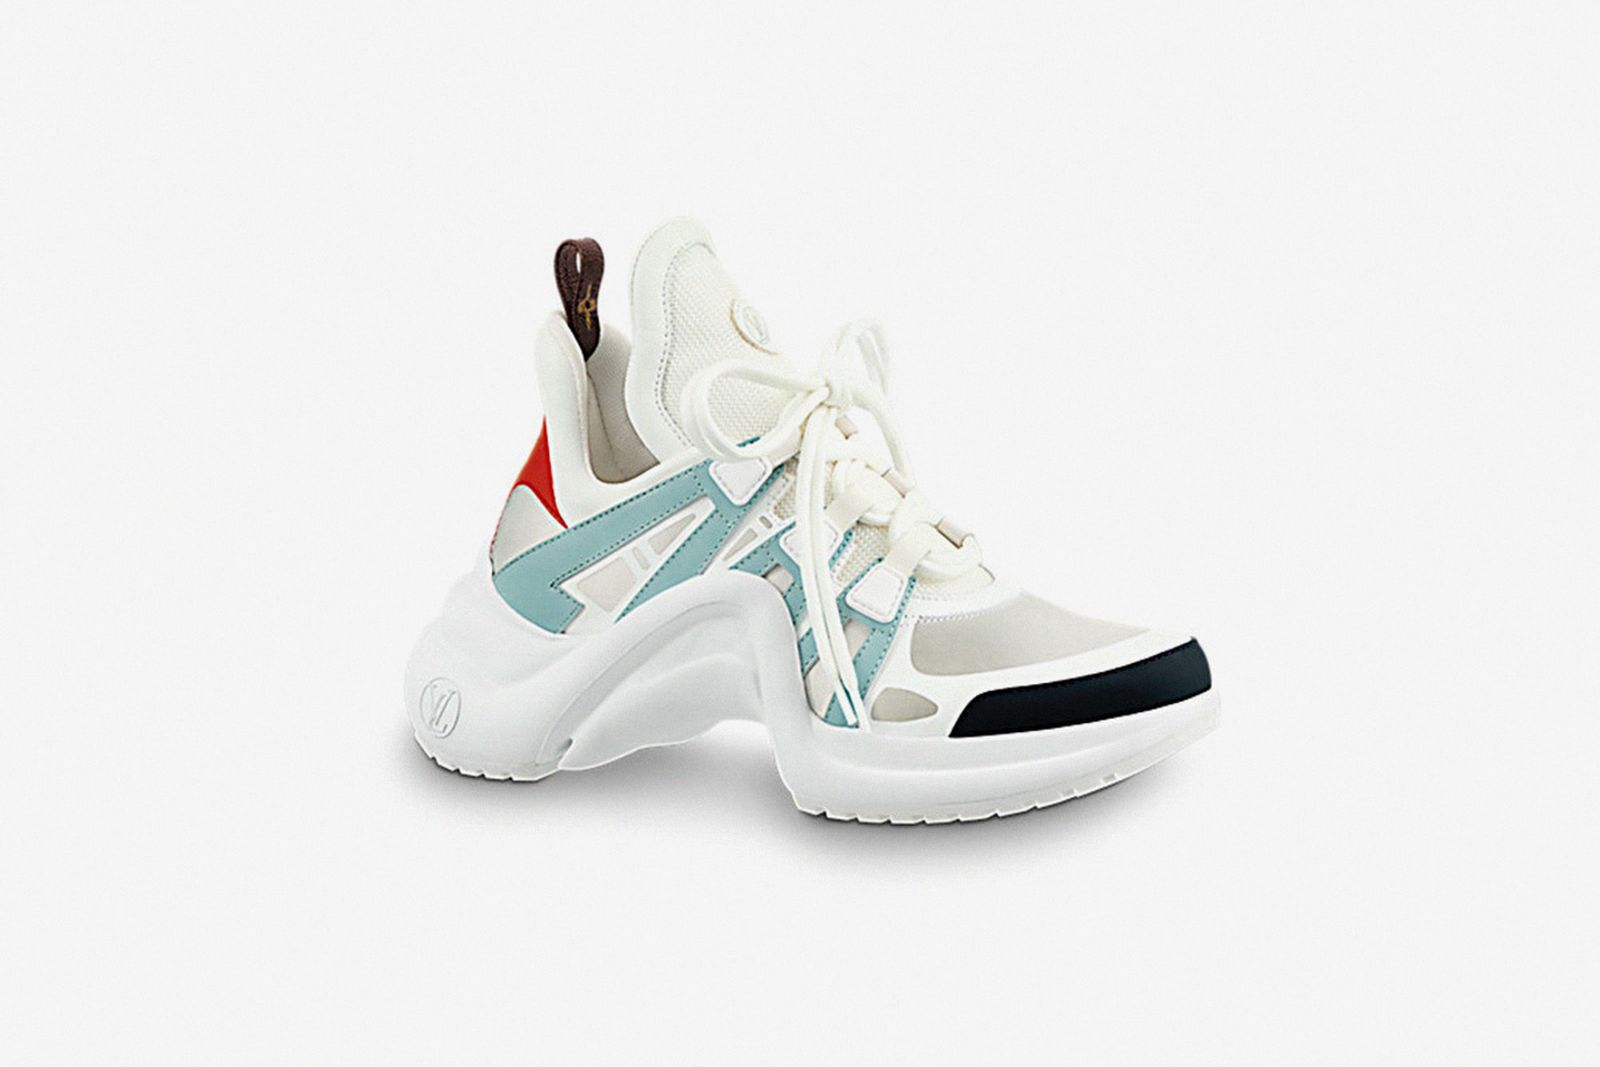 louis-vuitton-archlight-ss18-release-date-price-15